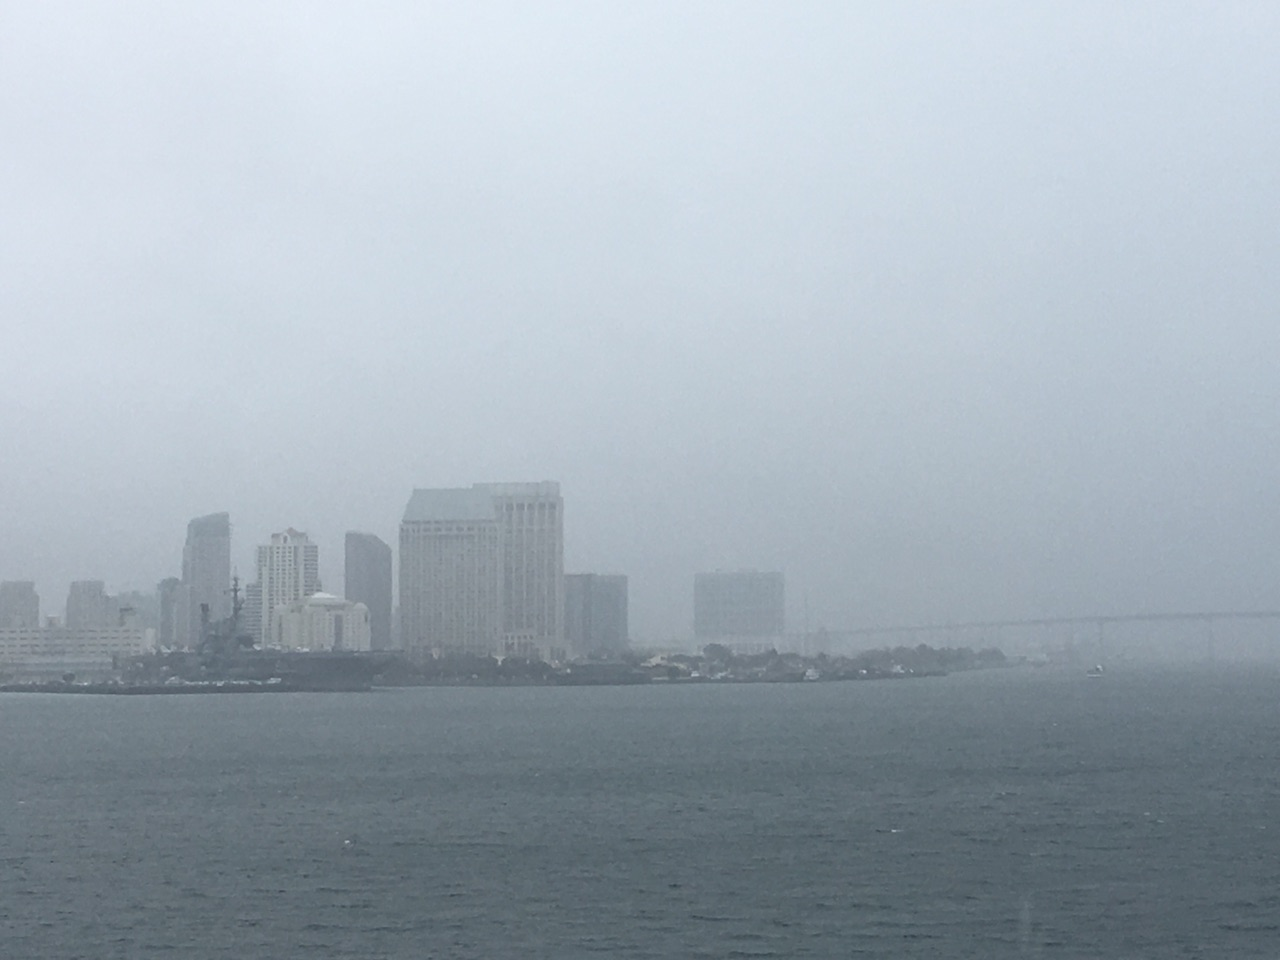 San Diego skyline in fog